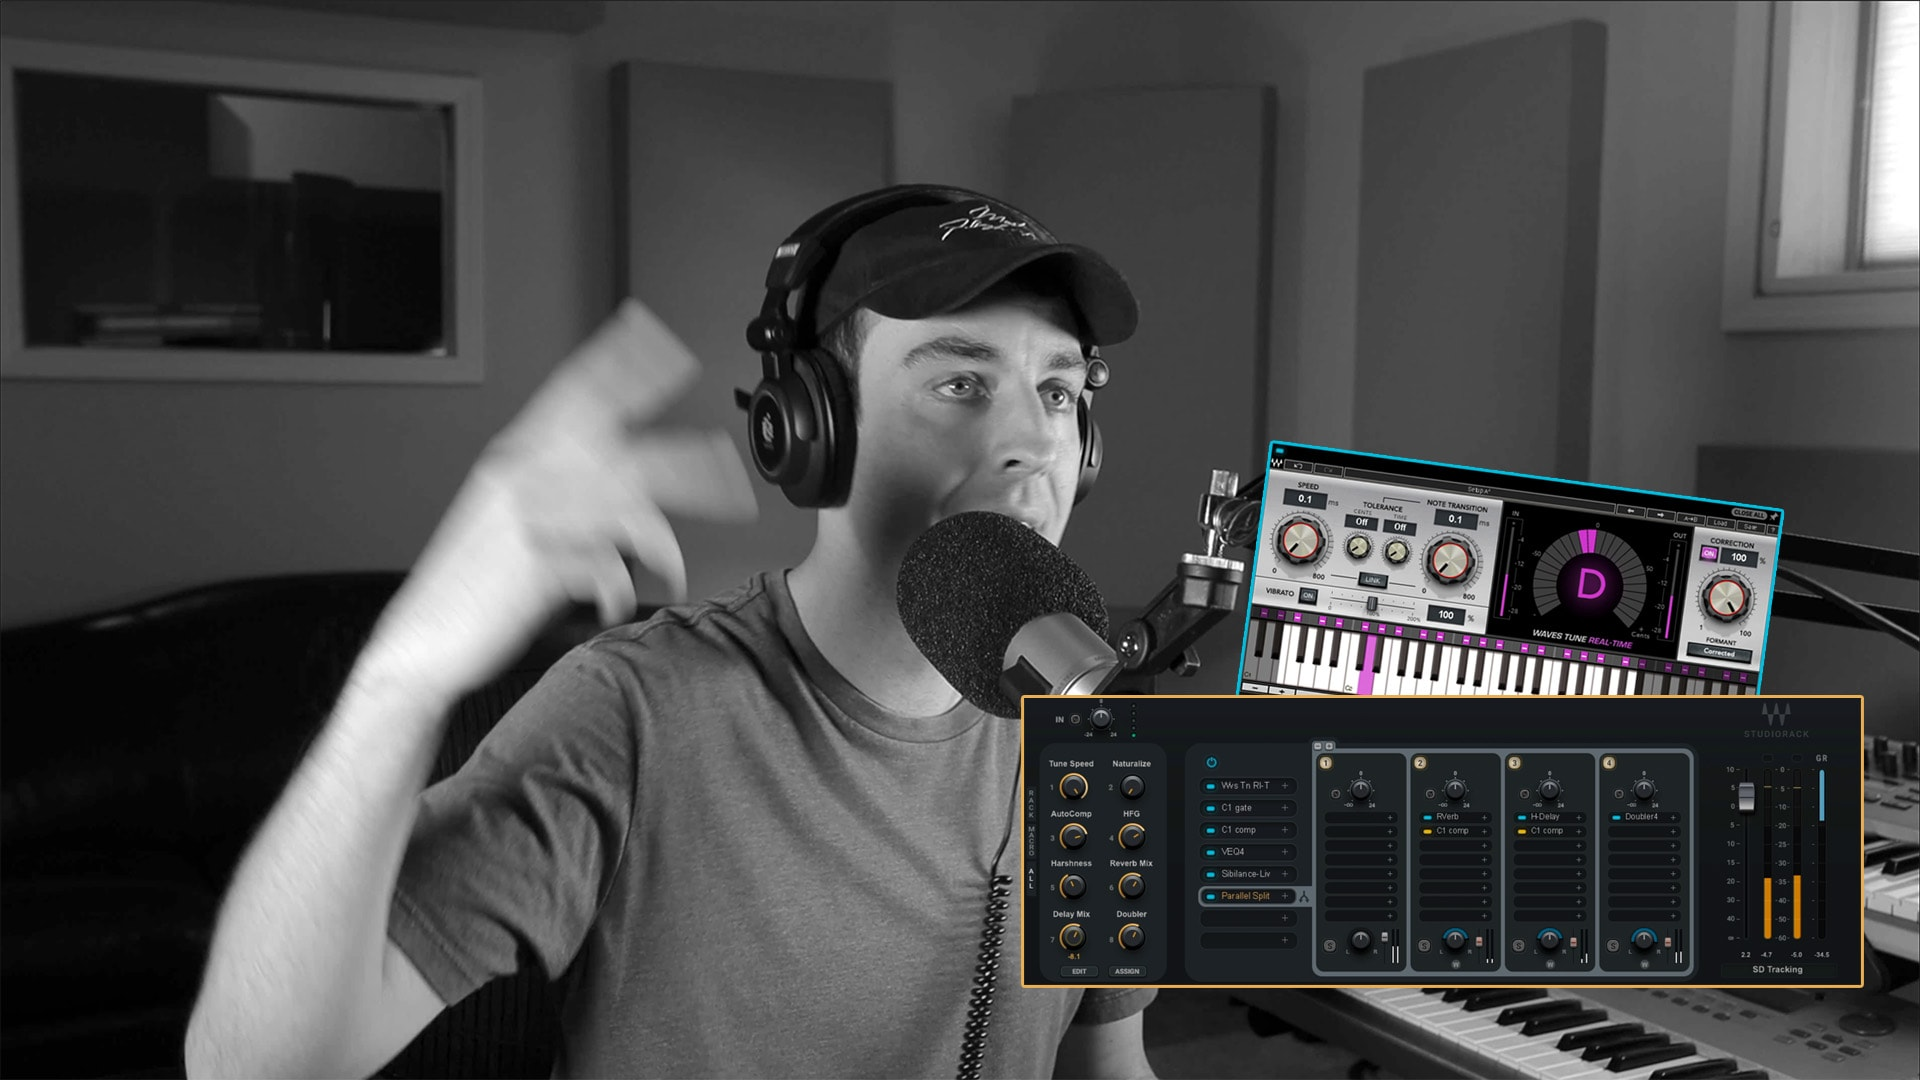 Divine Mixing - Vocal Chains SR (Zero Latency Live Tracking)